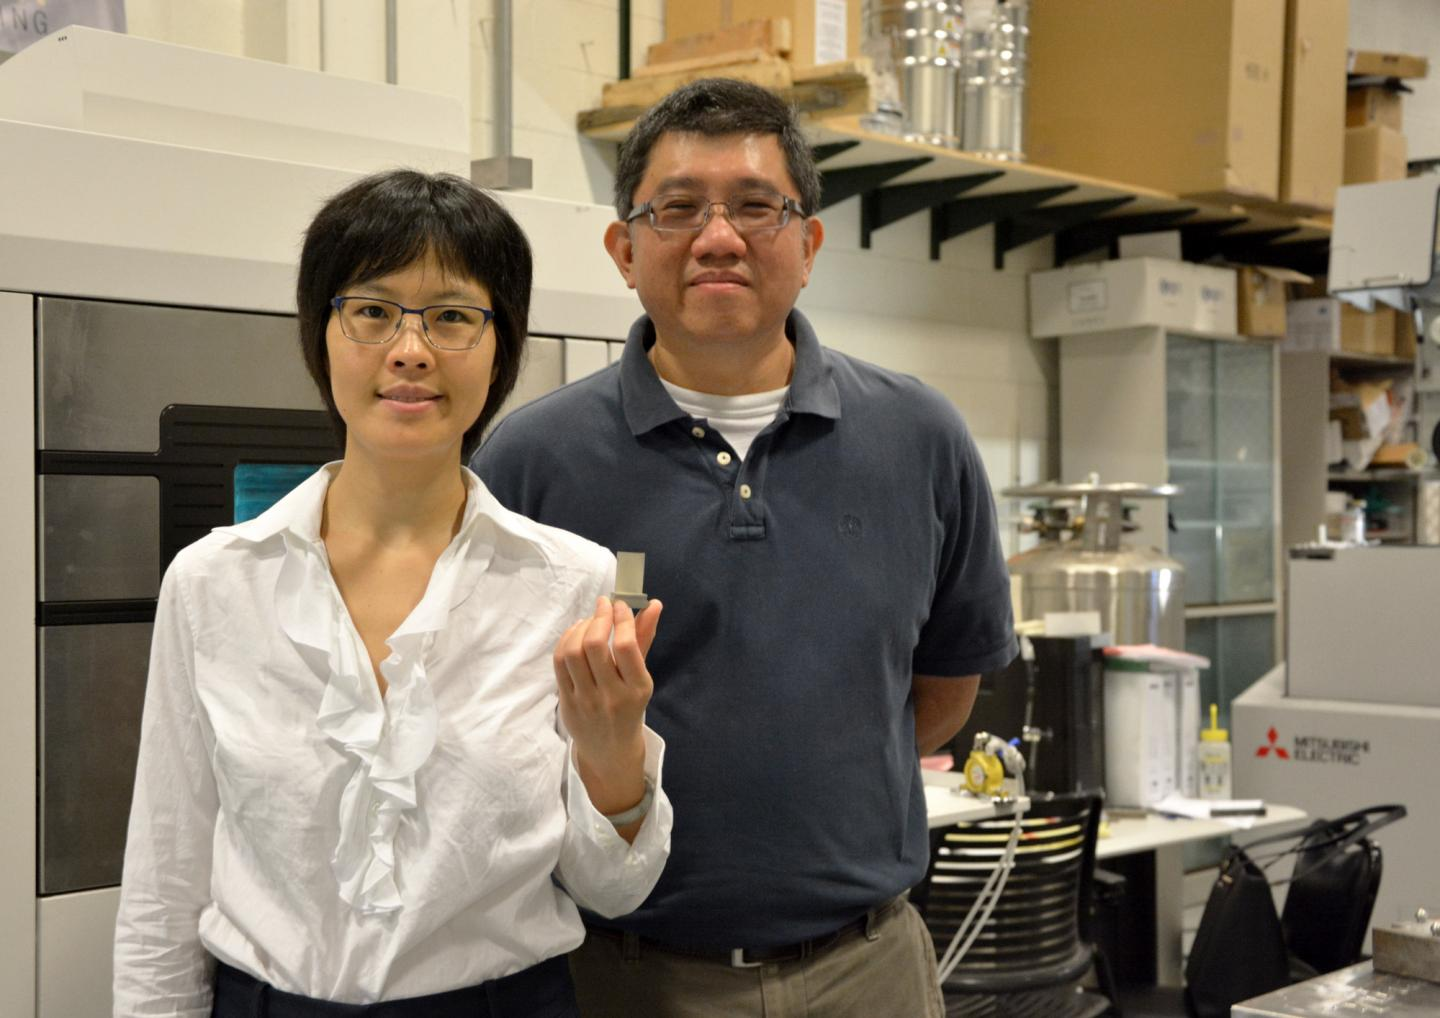 Xiayun Zhao, PhD, assistant professor of mechanical engineering and materials science, (left) and Albert To, PhD, associate professor of mechanical engineering and materials science. Photo via University of Pittsburgh.